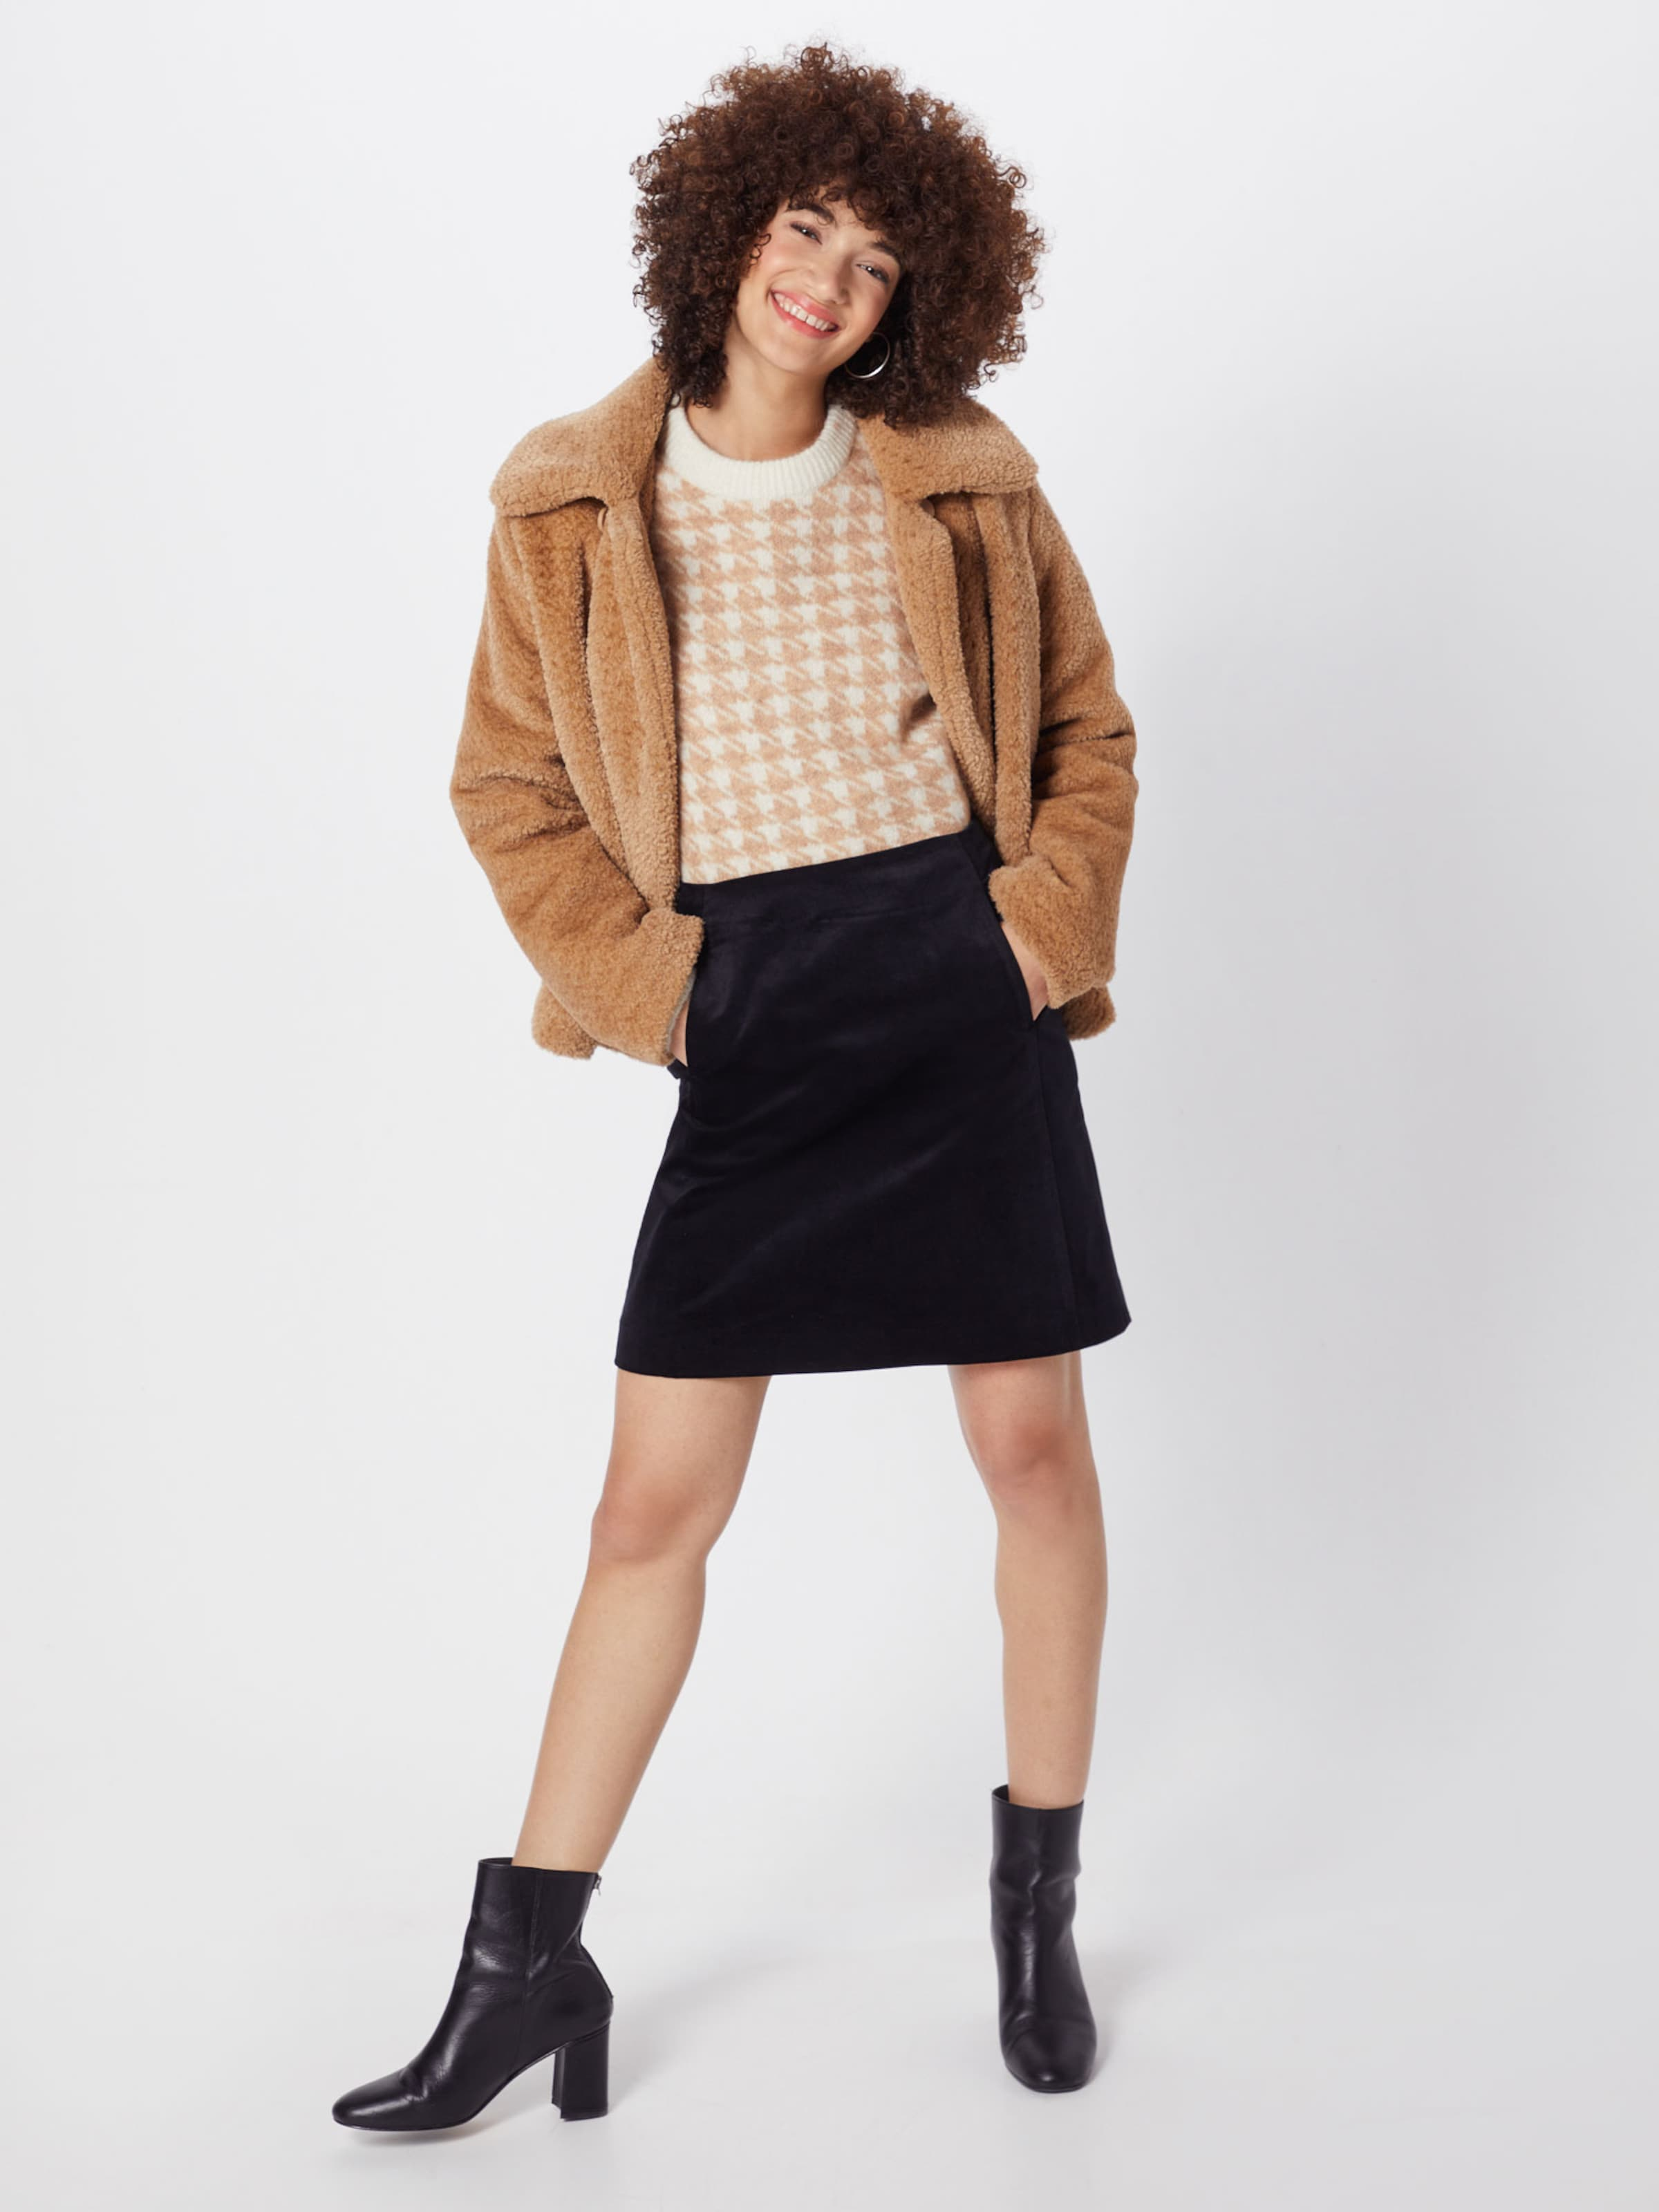 Re 'velvet draft Noir Jupe Skirt' En jUVpGLqSzM